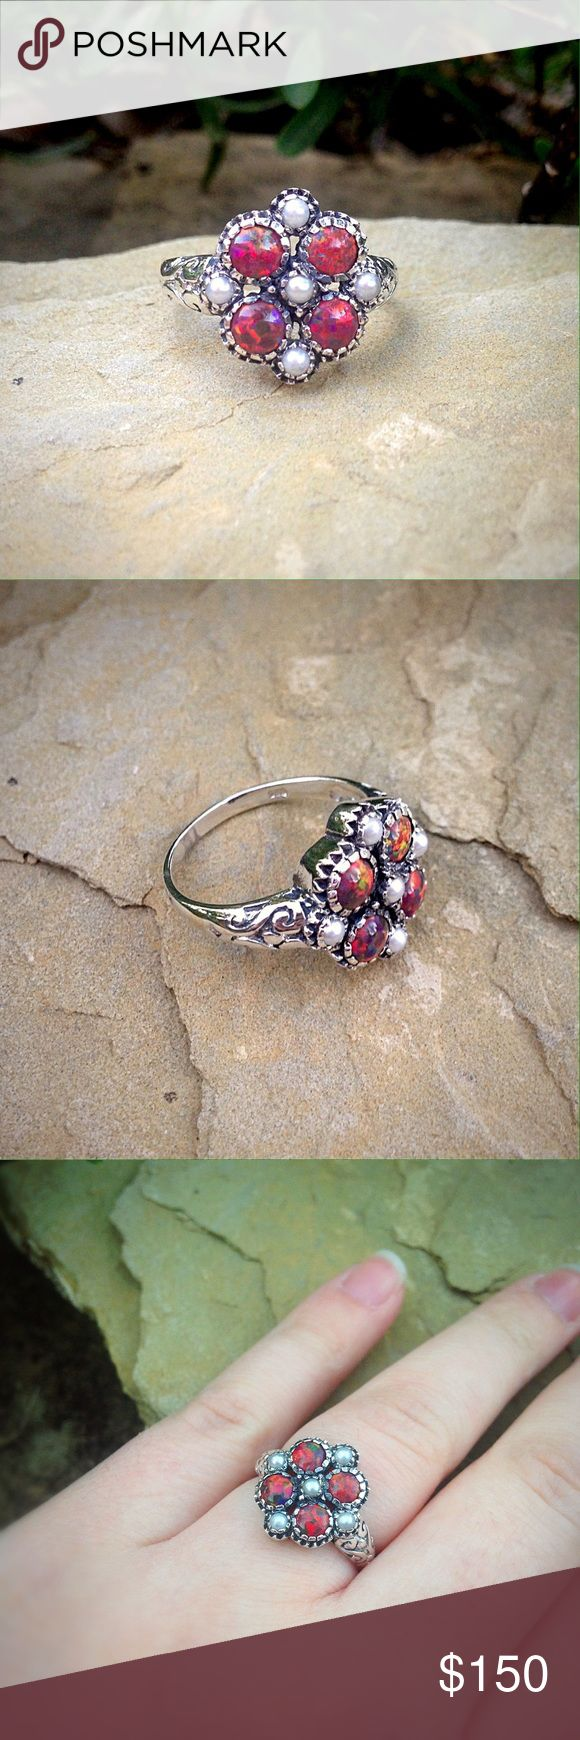 Solid sterling silver boho red opal & pearl ring Super unique red opal and pearl ring. Jewelry Rings